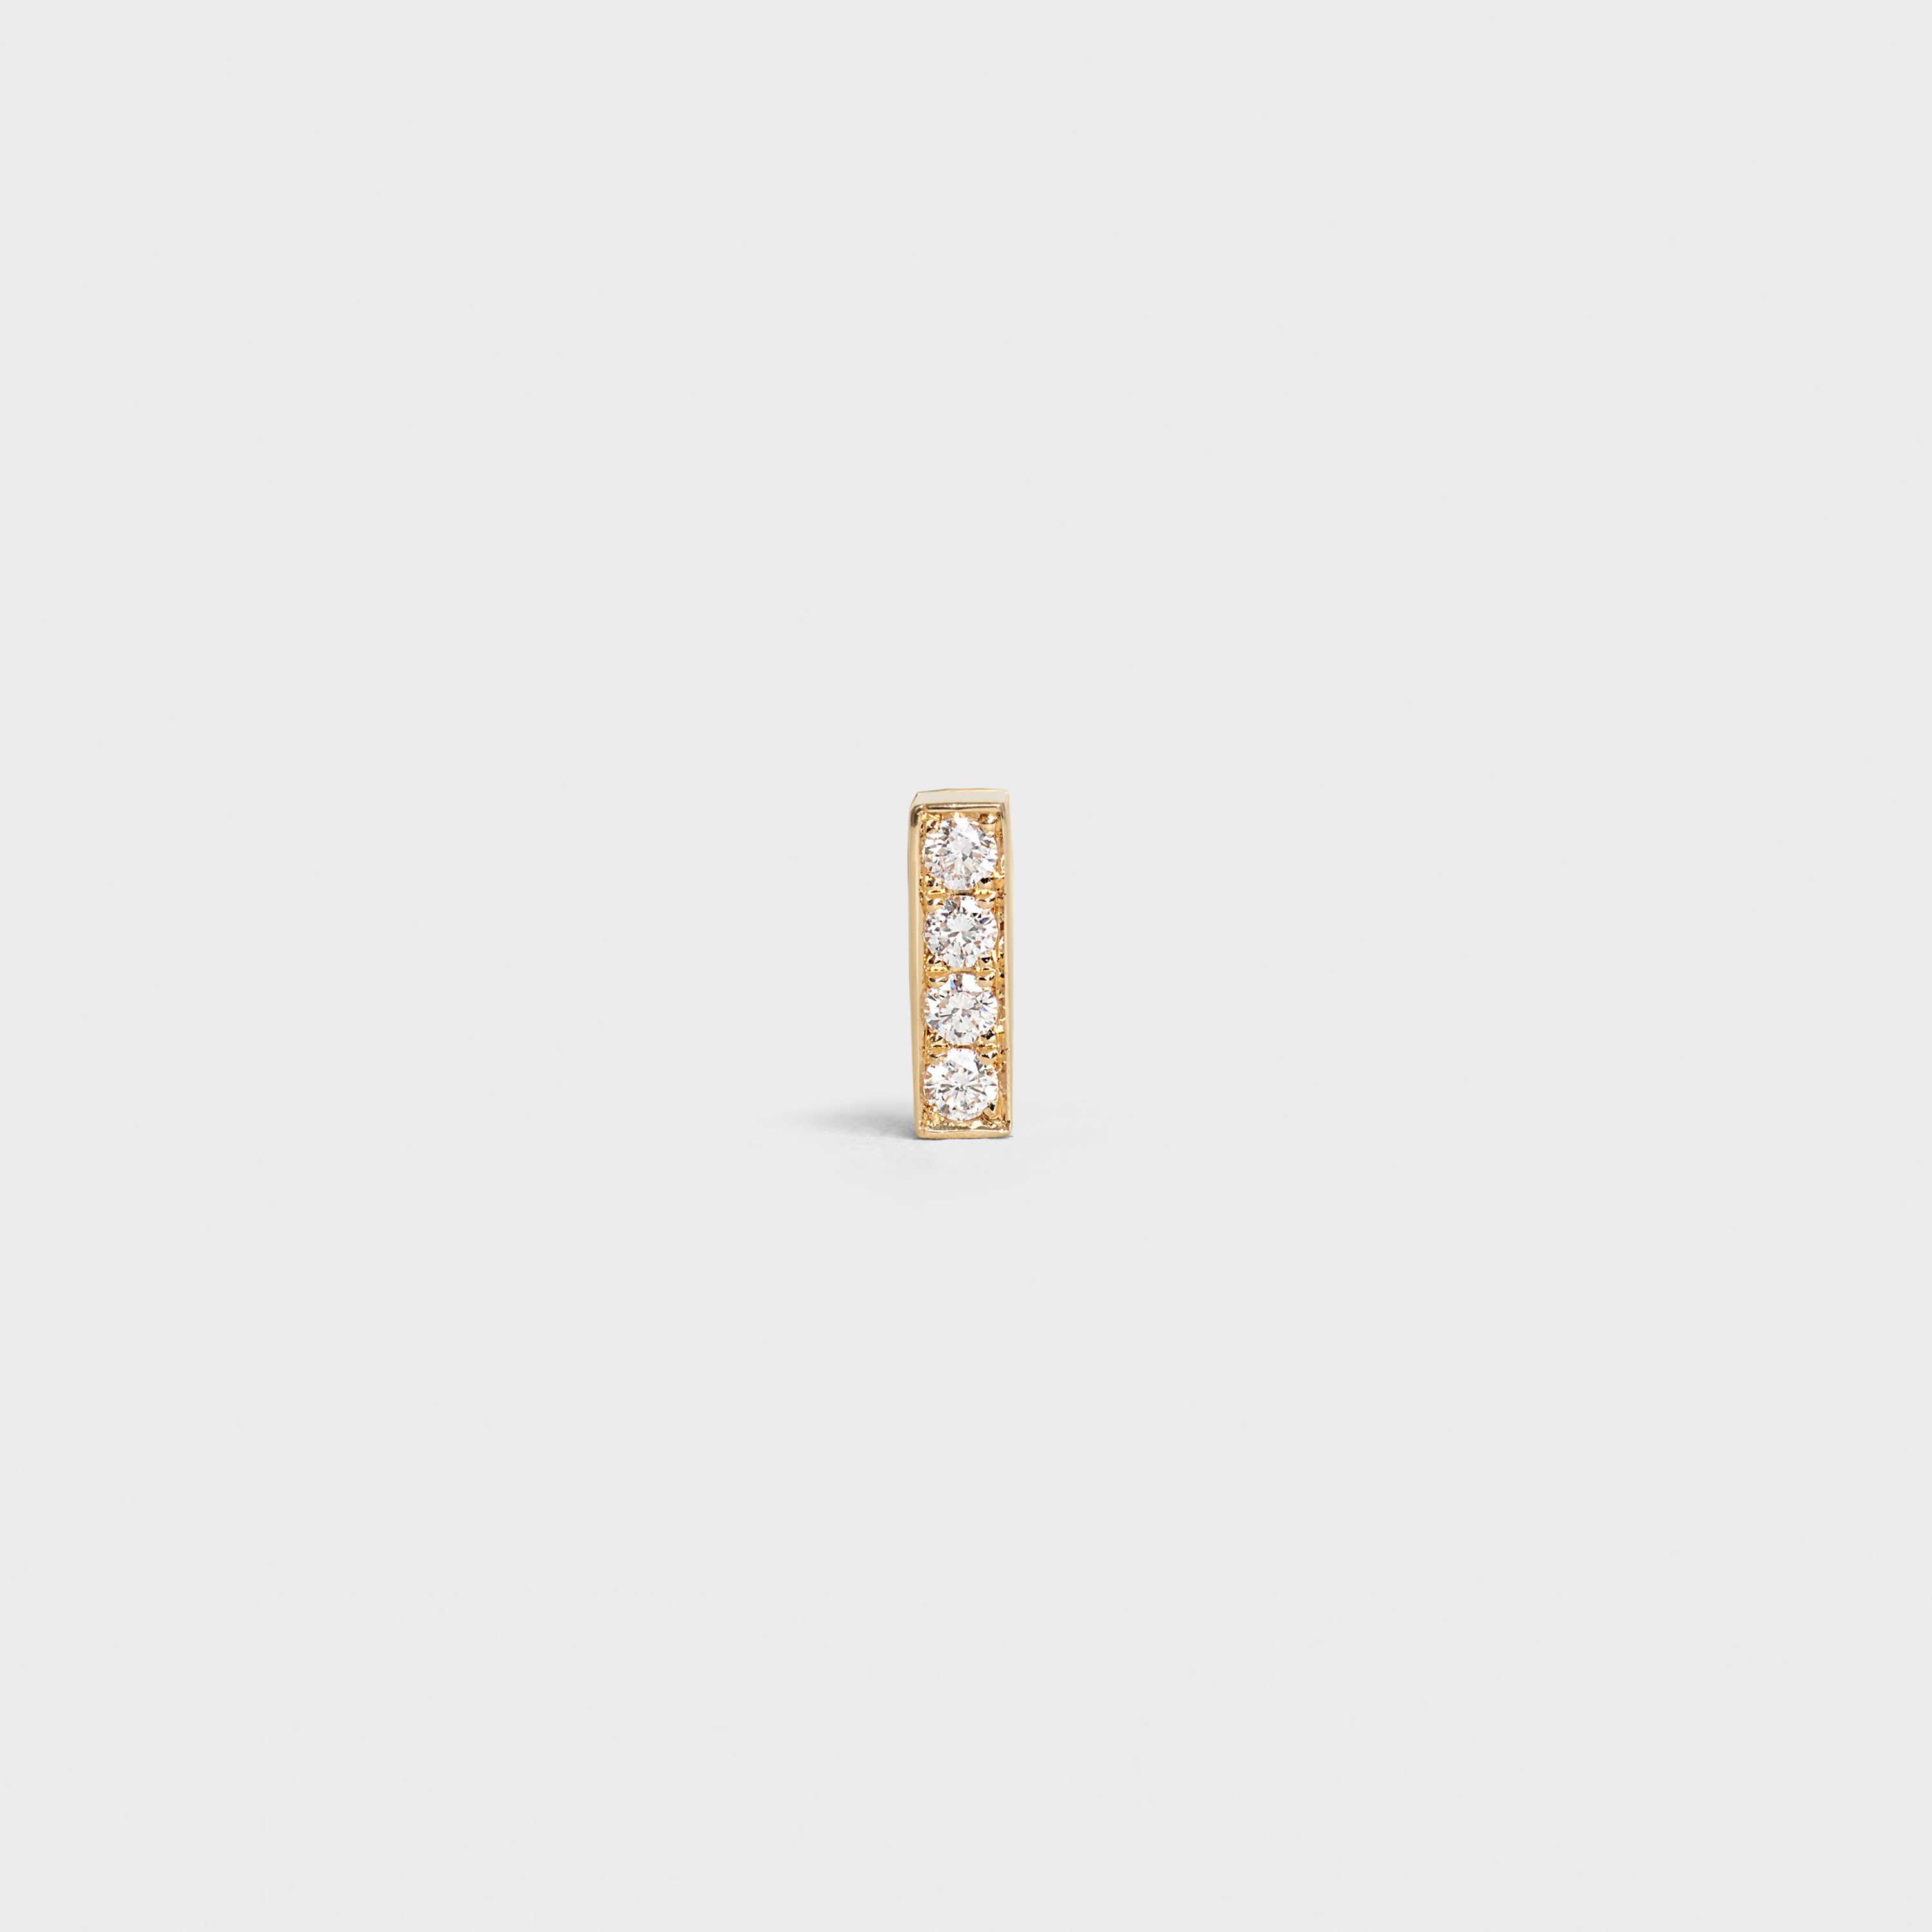 Celine Sentimental Small Line Stud in Yellow Gold and Diamond | CELINE